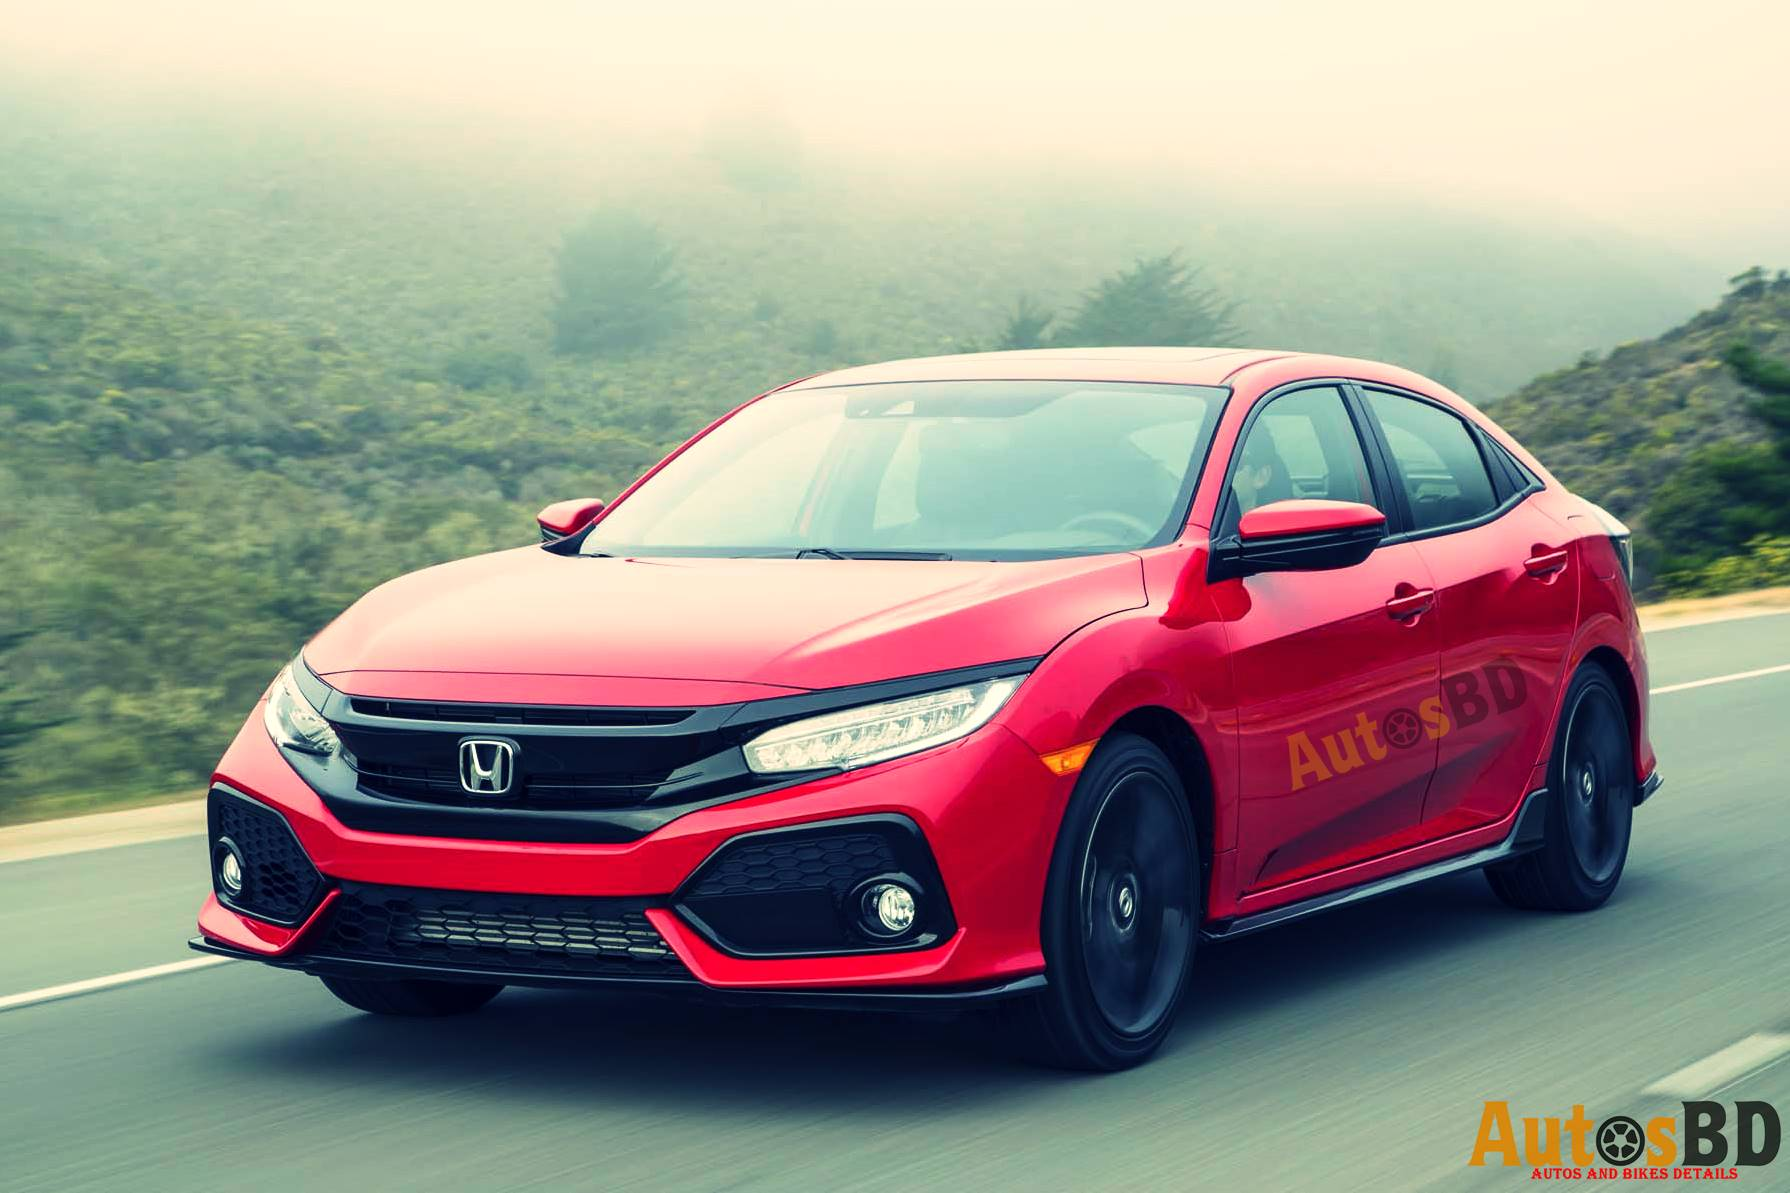 2017 Honda Civic Specification